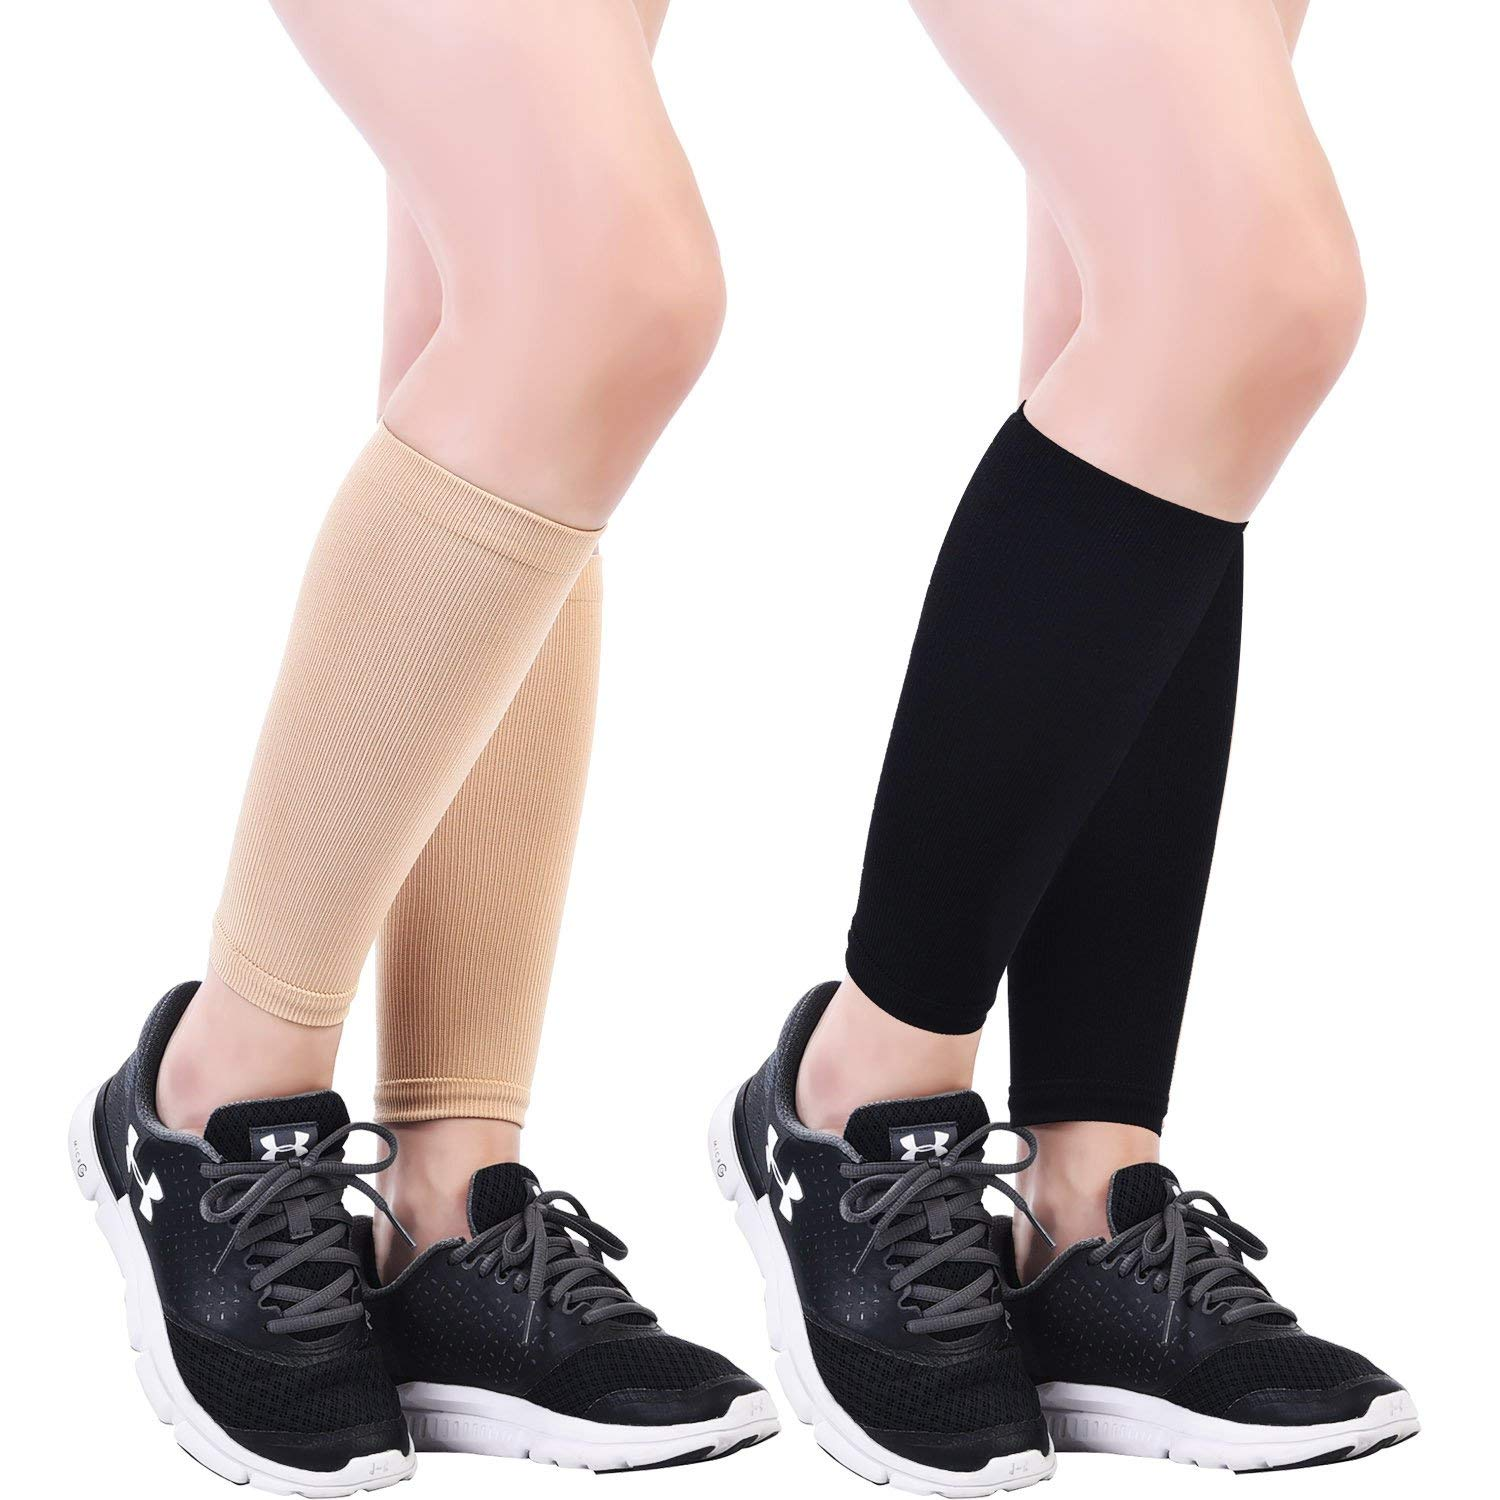 Gejoy 2 Pairs Leg Compression Sleeves Calf Sleeve Elastic Relieve Pain Calf Sleeves for Sports and Fitness, 2 Colors